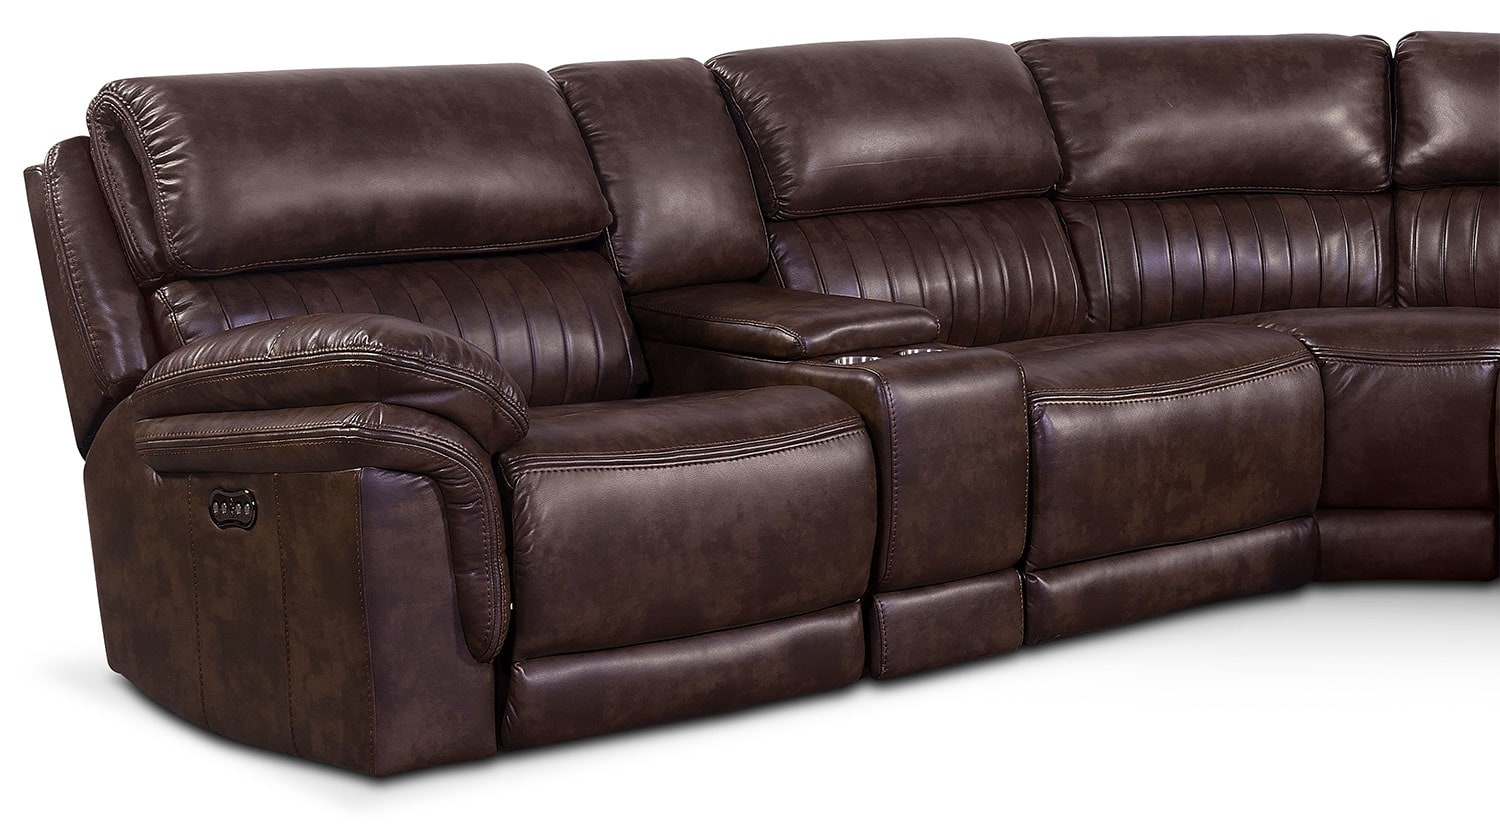 Monterey 6 Piece Power Reclining Sectional With 3 With Lannister Dual Power Reclining Sofas (View 6 of 7)